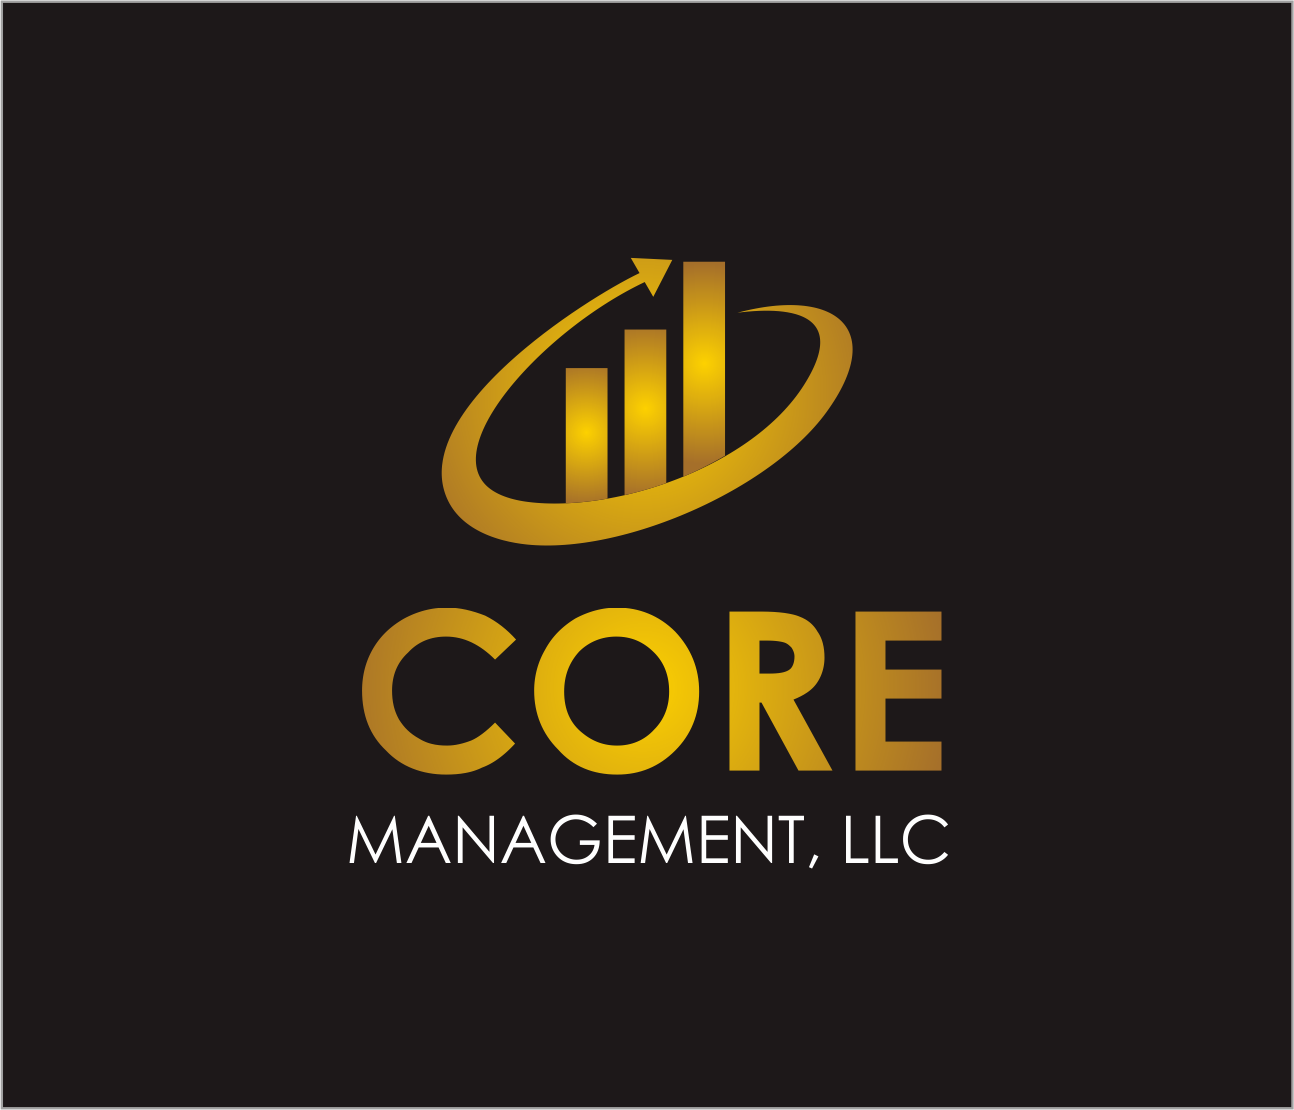 Logo Design by Armada Jamaluddin - Entry No. 167 in the Logo Design Contest Creative Logo Design for CORE Management, LLC.